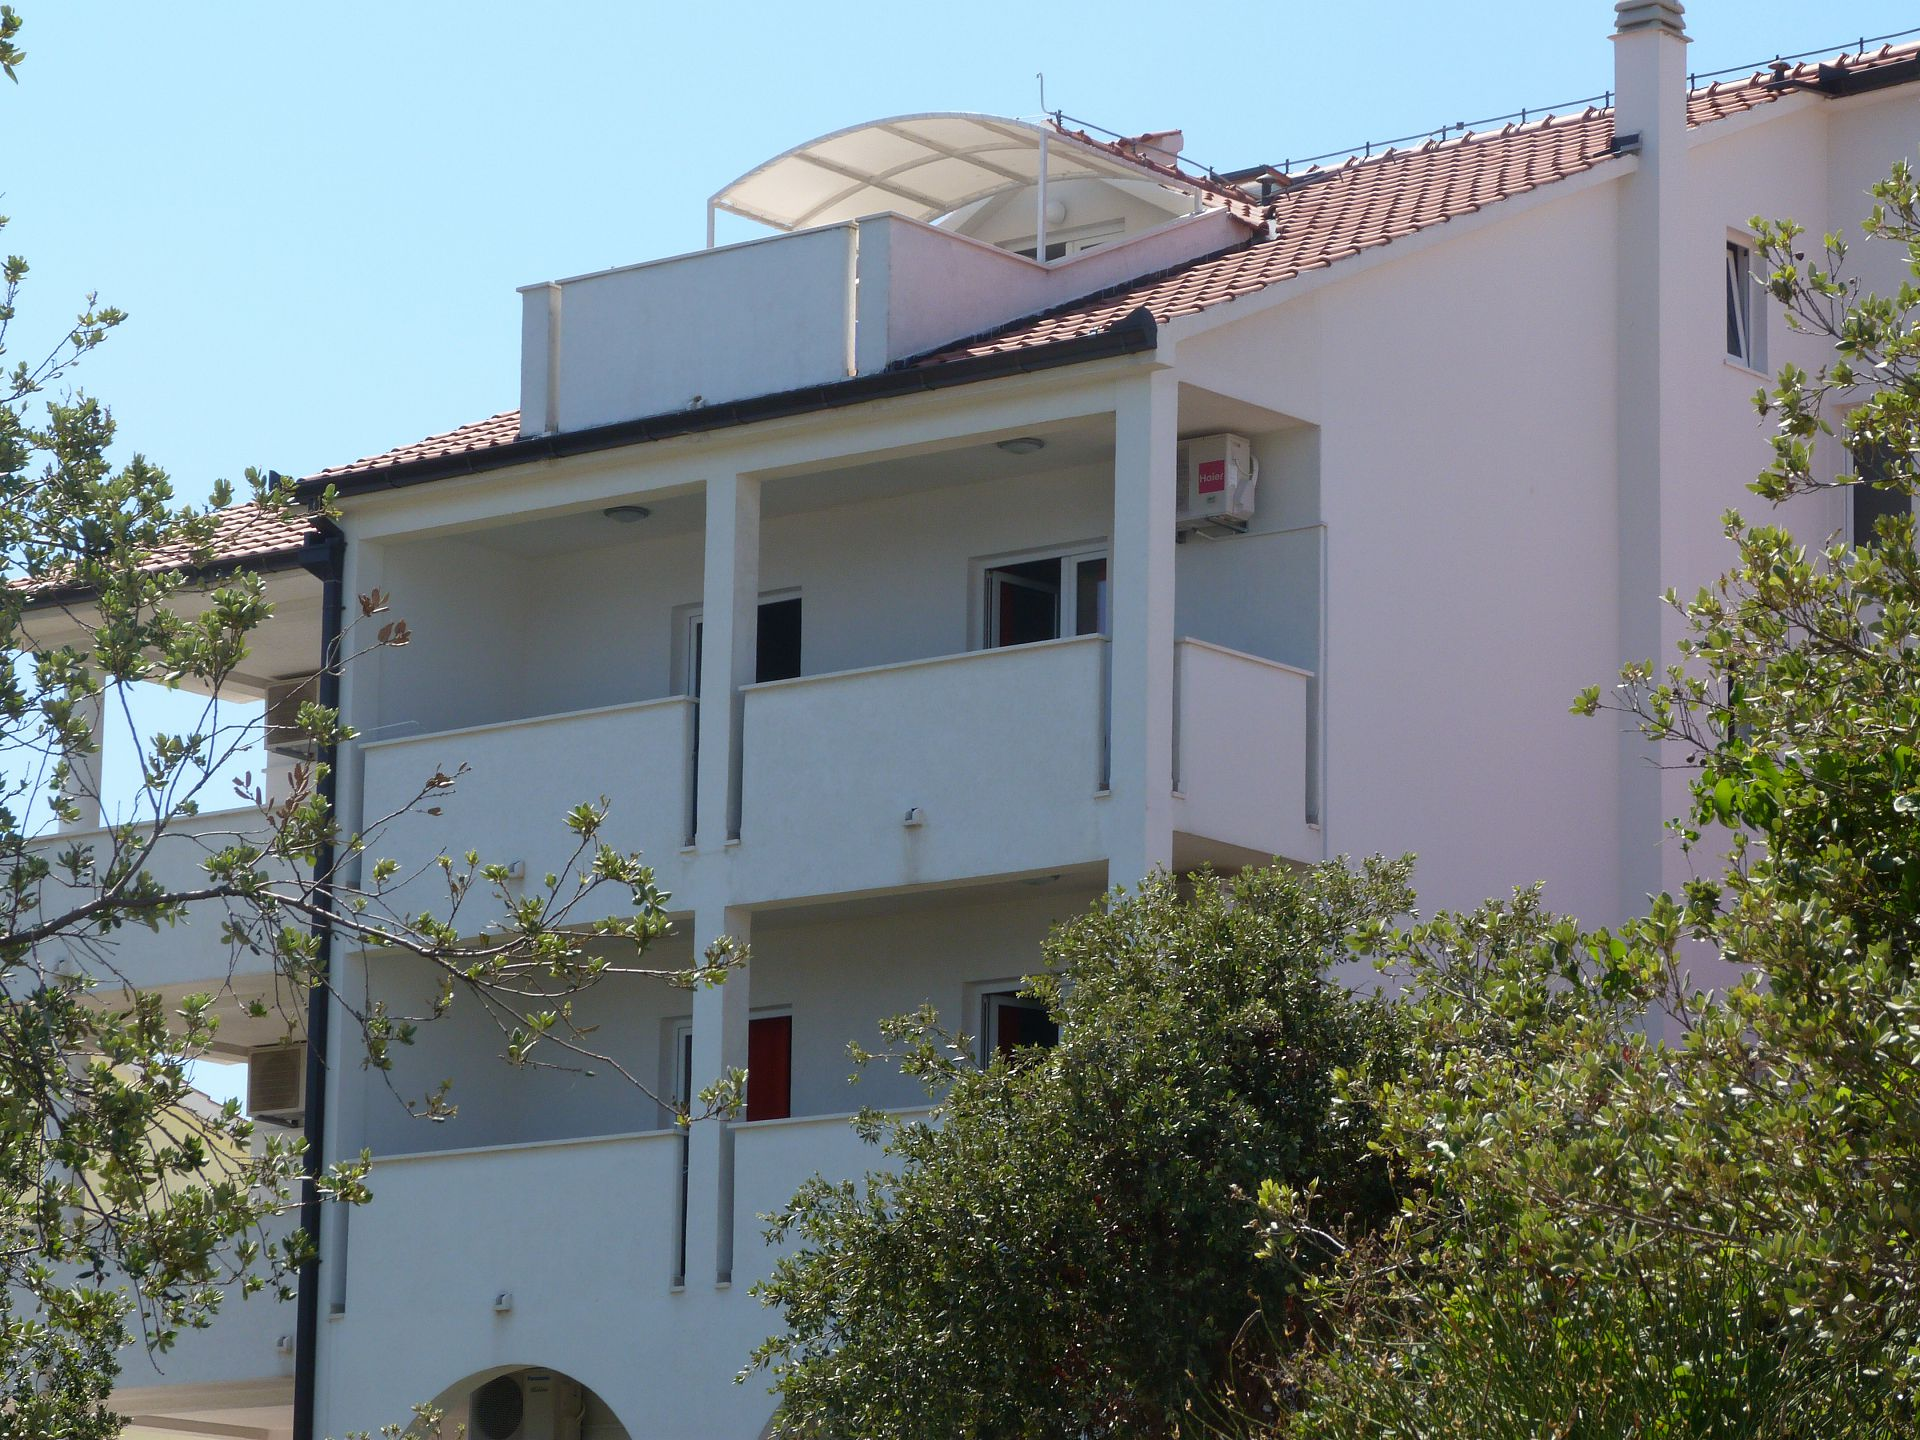 00207SEVI - Sevid - Apartments Croatia